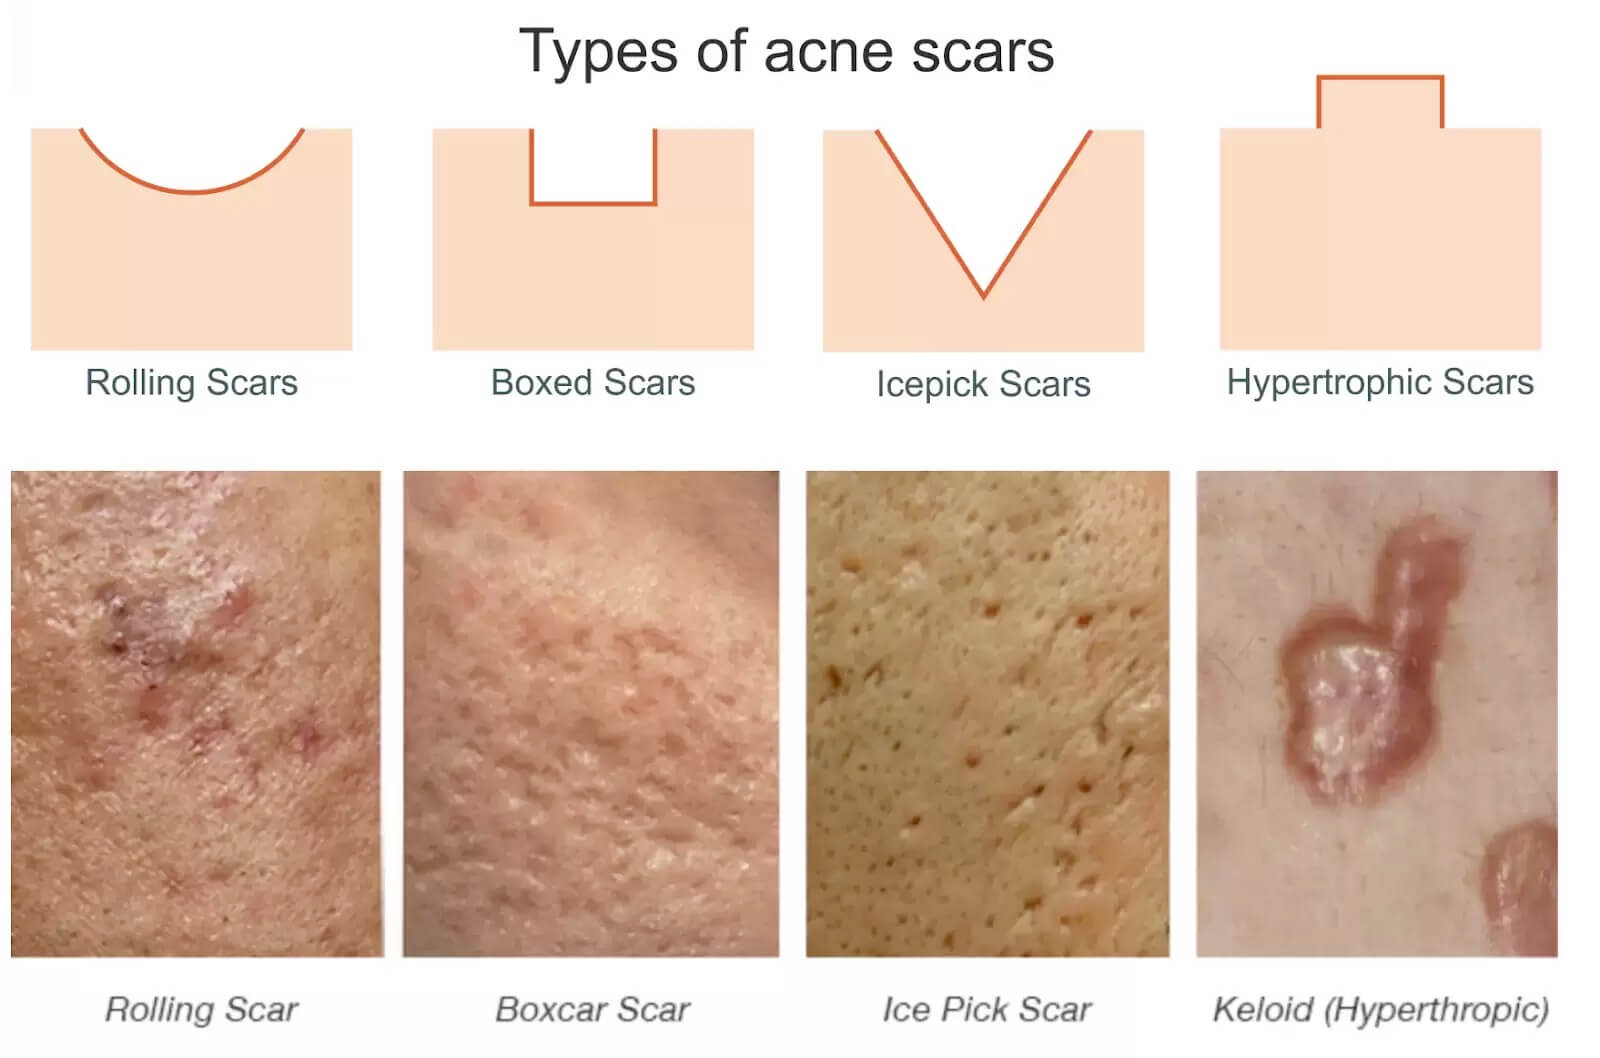 A graphic showing the difference between the 4 major types of acne scarring both in diagram form and on someones face and cheeks